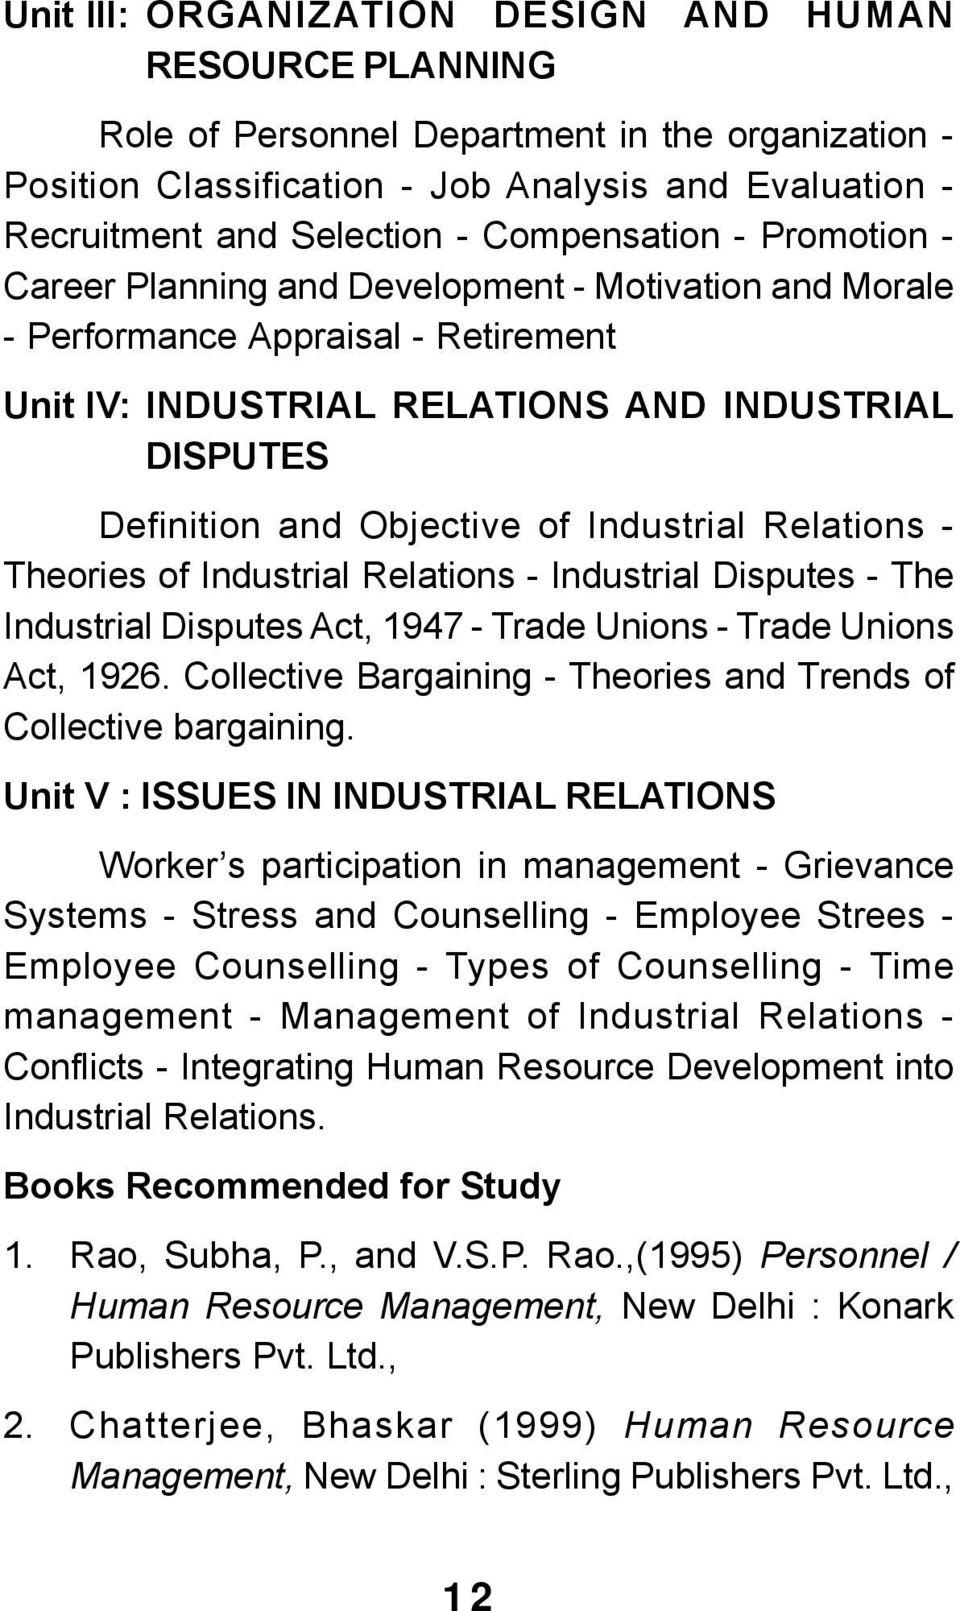 Compensation - Promotion - Career Planning and Development - Motivation and Morale - Performance Appraisal - Retirement Unit IV: INDUSTRIAL RELATIONS AND INDUSTRIAL DISPUTES Definition and Objective